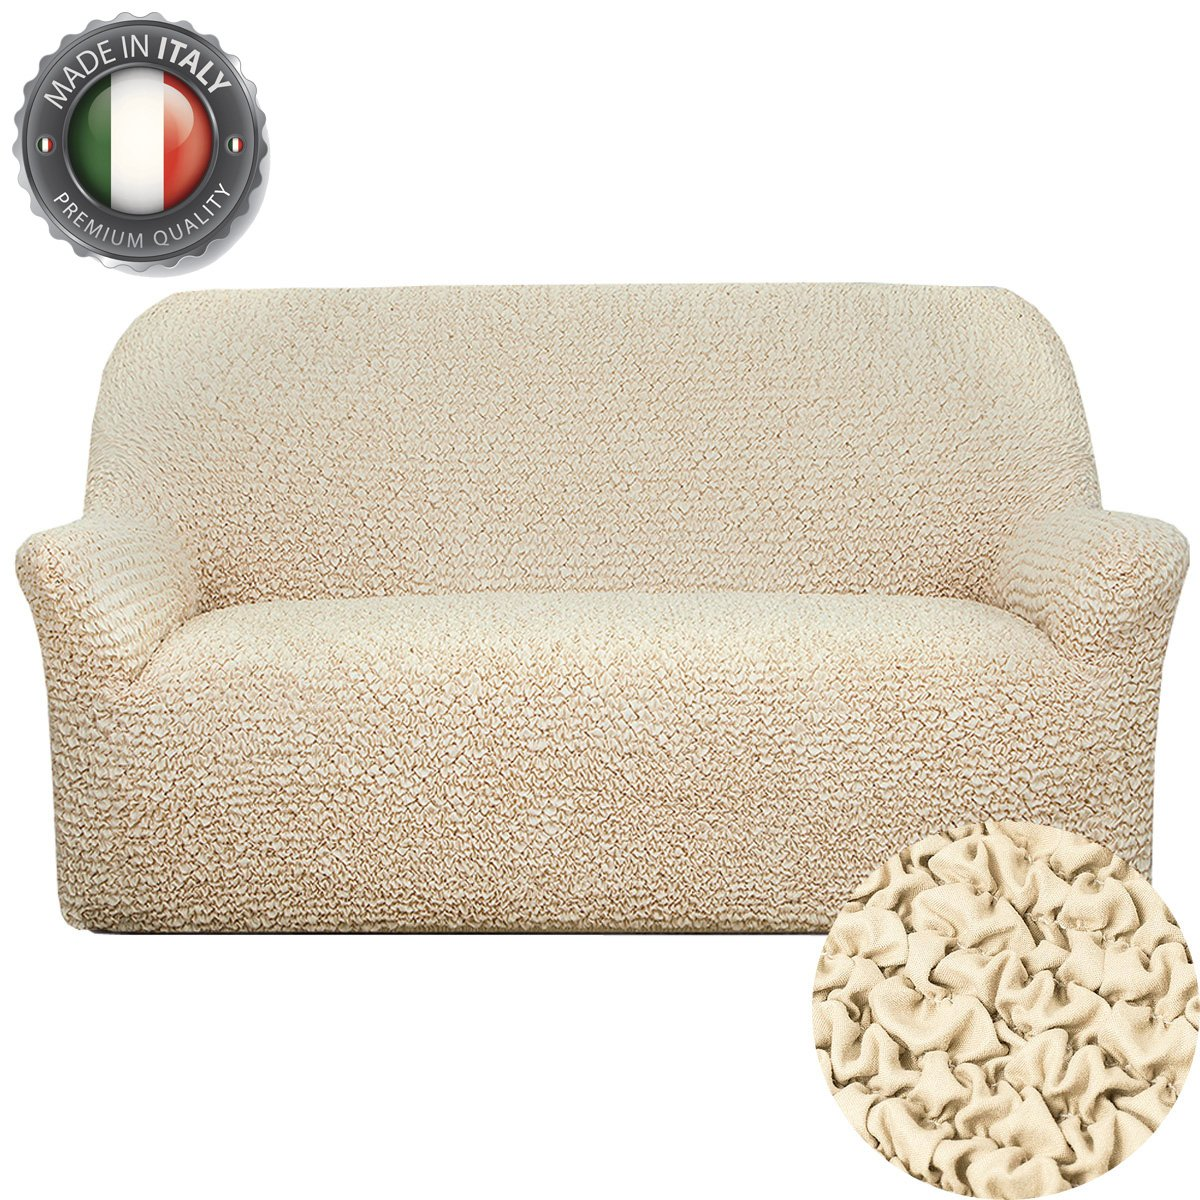 Couch Cover - Stretch Sofa Slipcover Furniture Protector - 1 Piece Form Fit Sofa Protector - Stretch Loveseat Couch Covers For Dogs - Sofa Slipcovers Set - Pet Couch Slipcover - Elastic Microfiber Cotton Polyester - Fits All Kind Of Sofa - Italy (Chair, Va